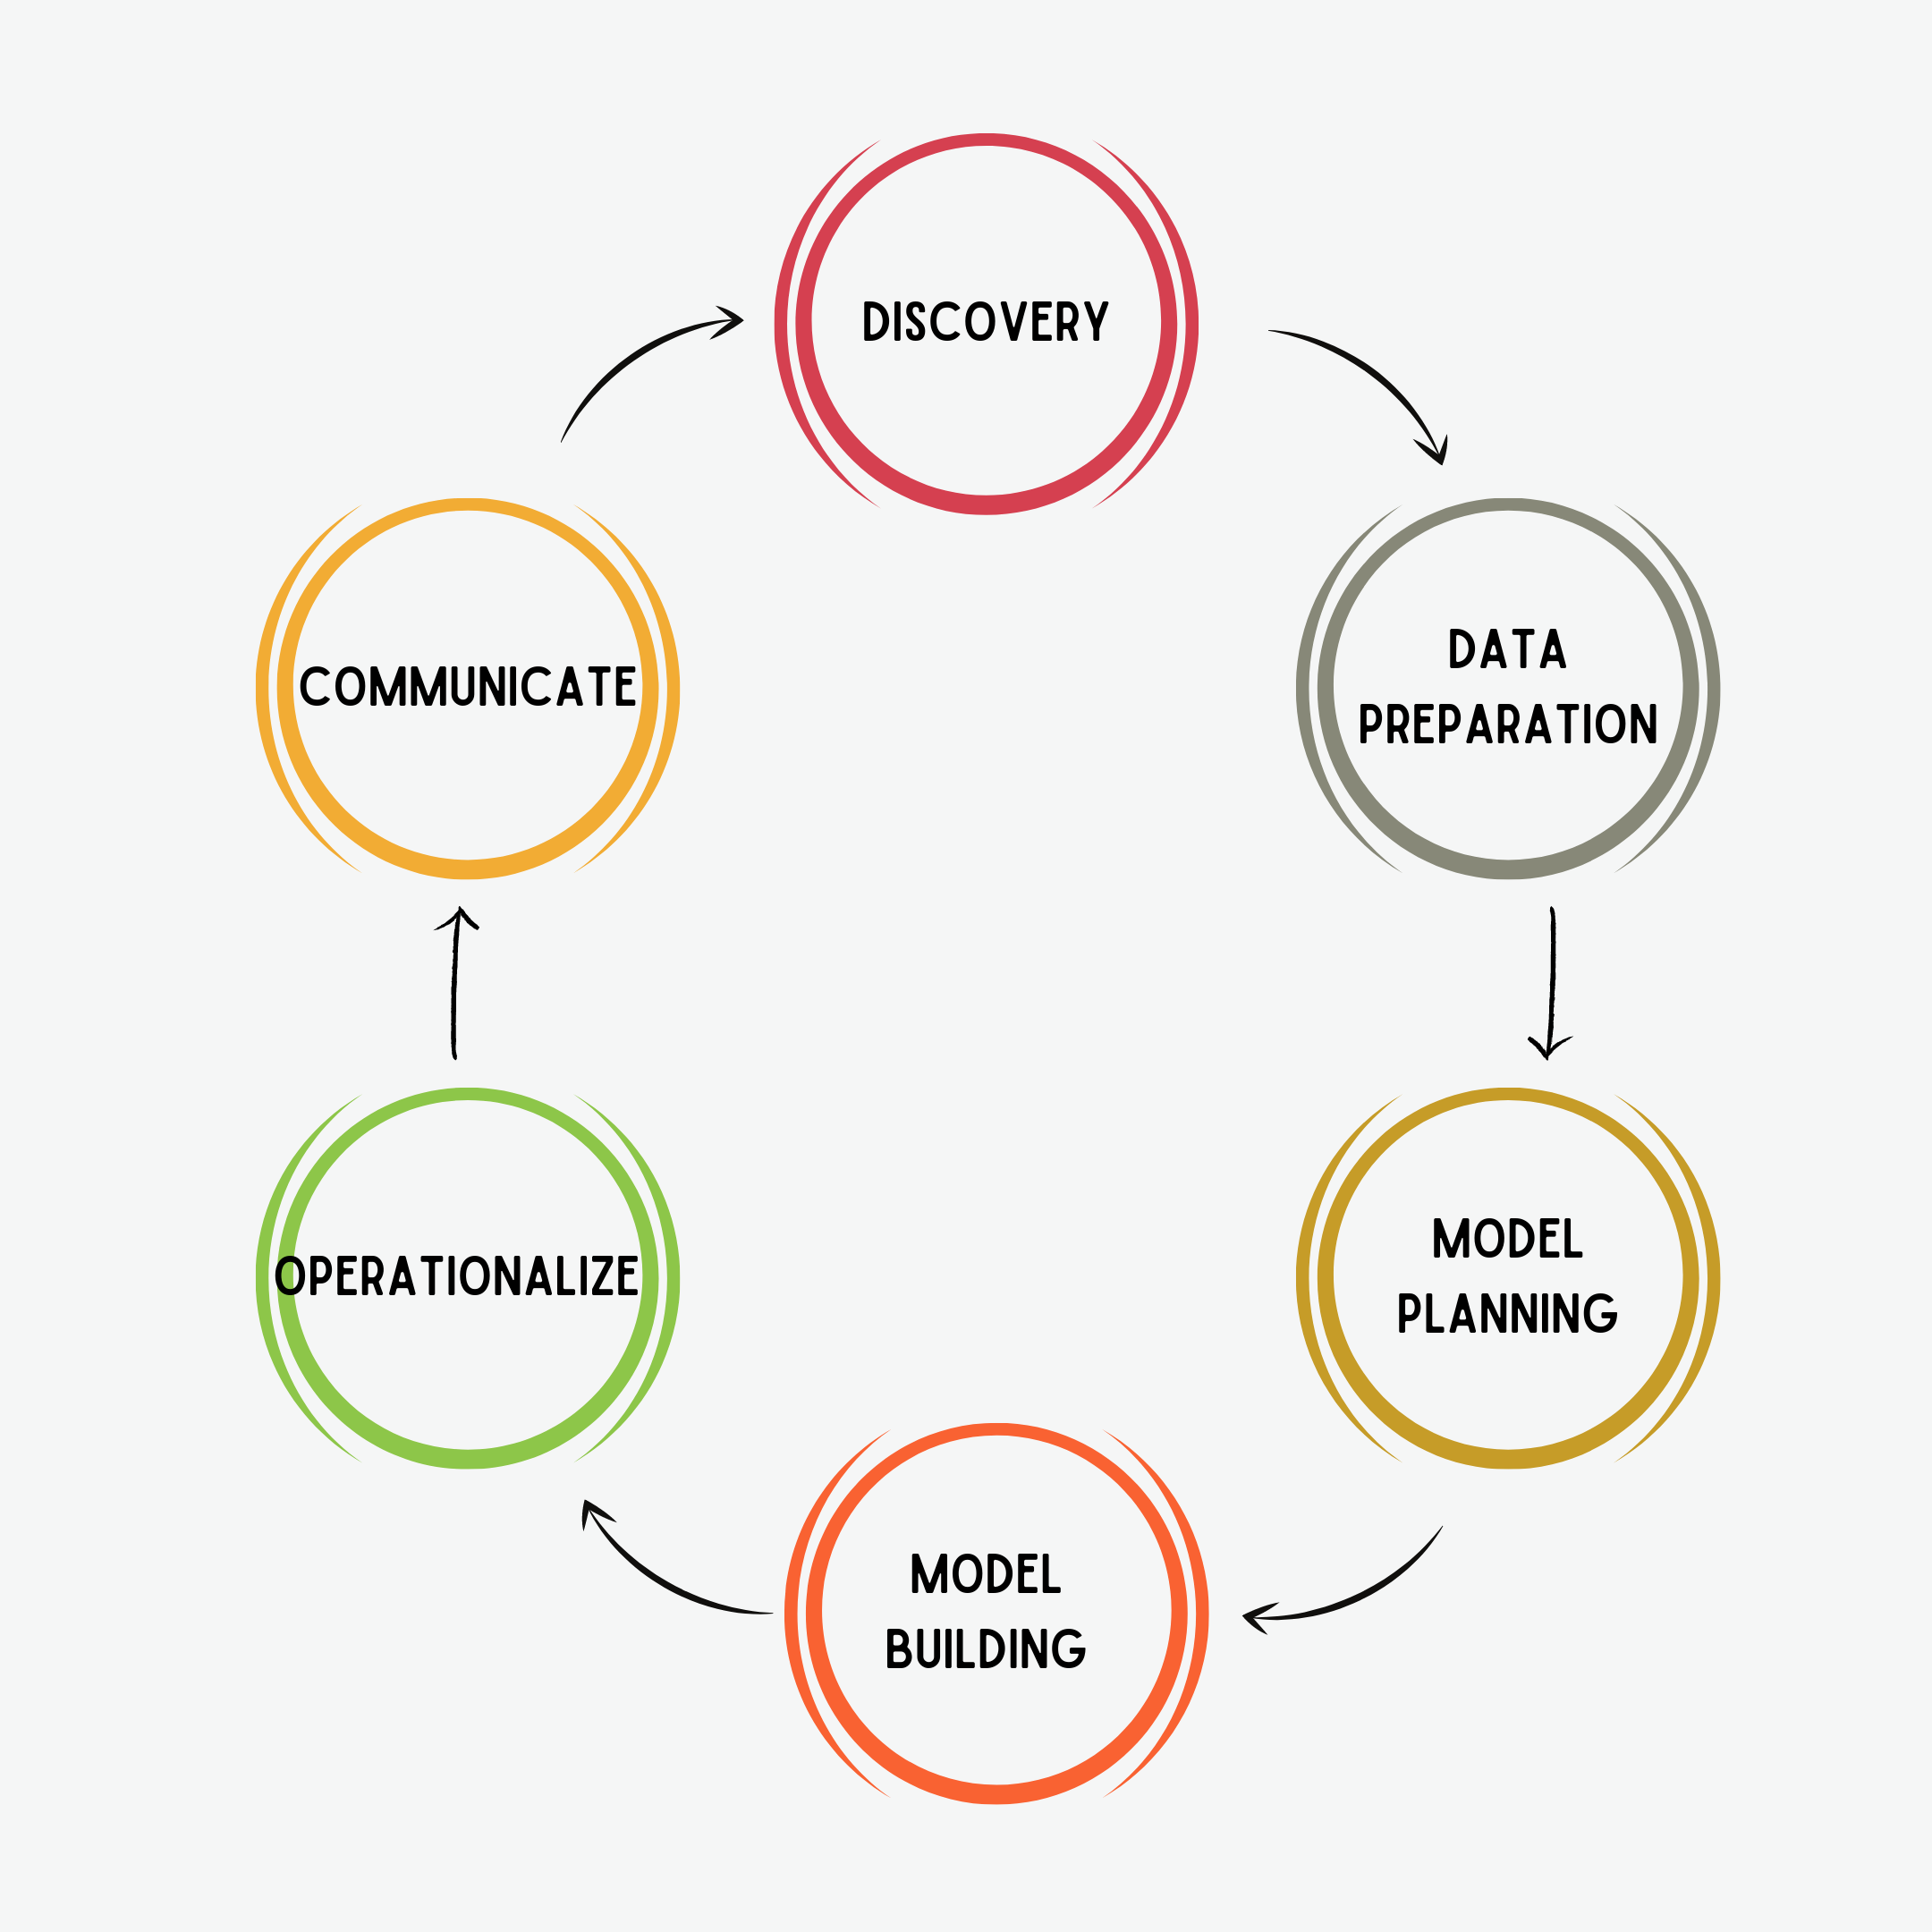 Figure 3. Life Cycle of Data Science Domain Applications